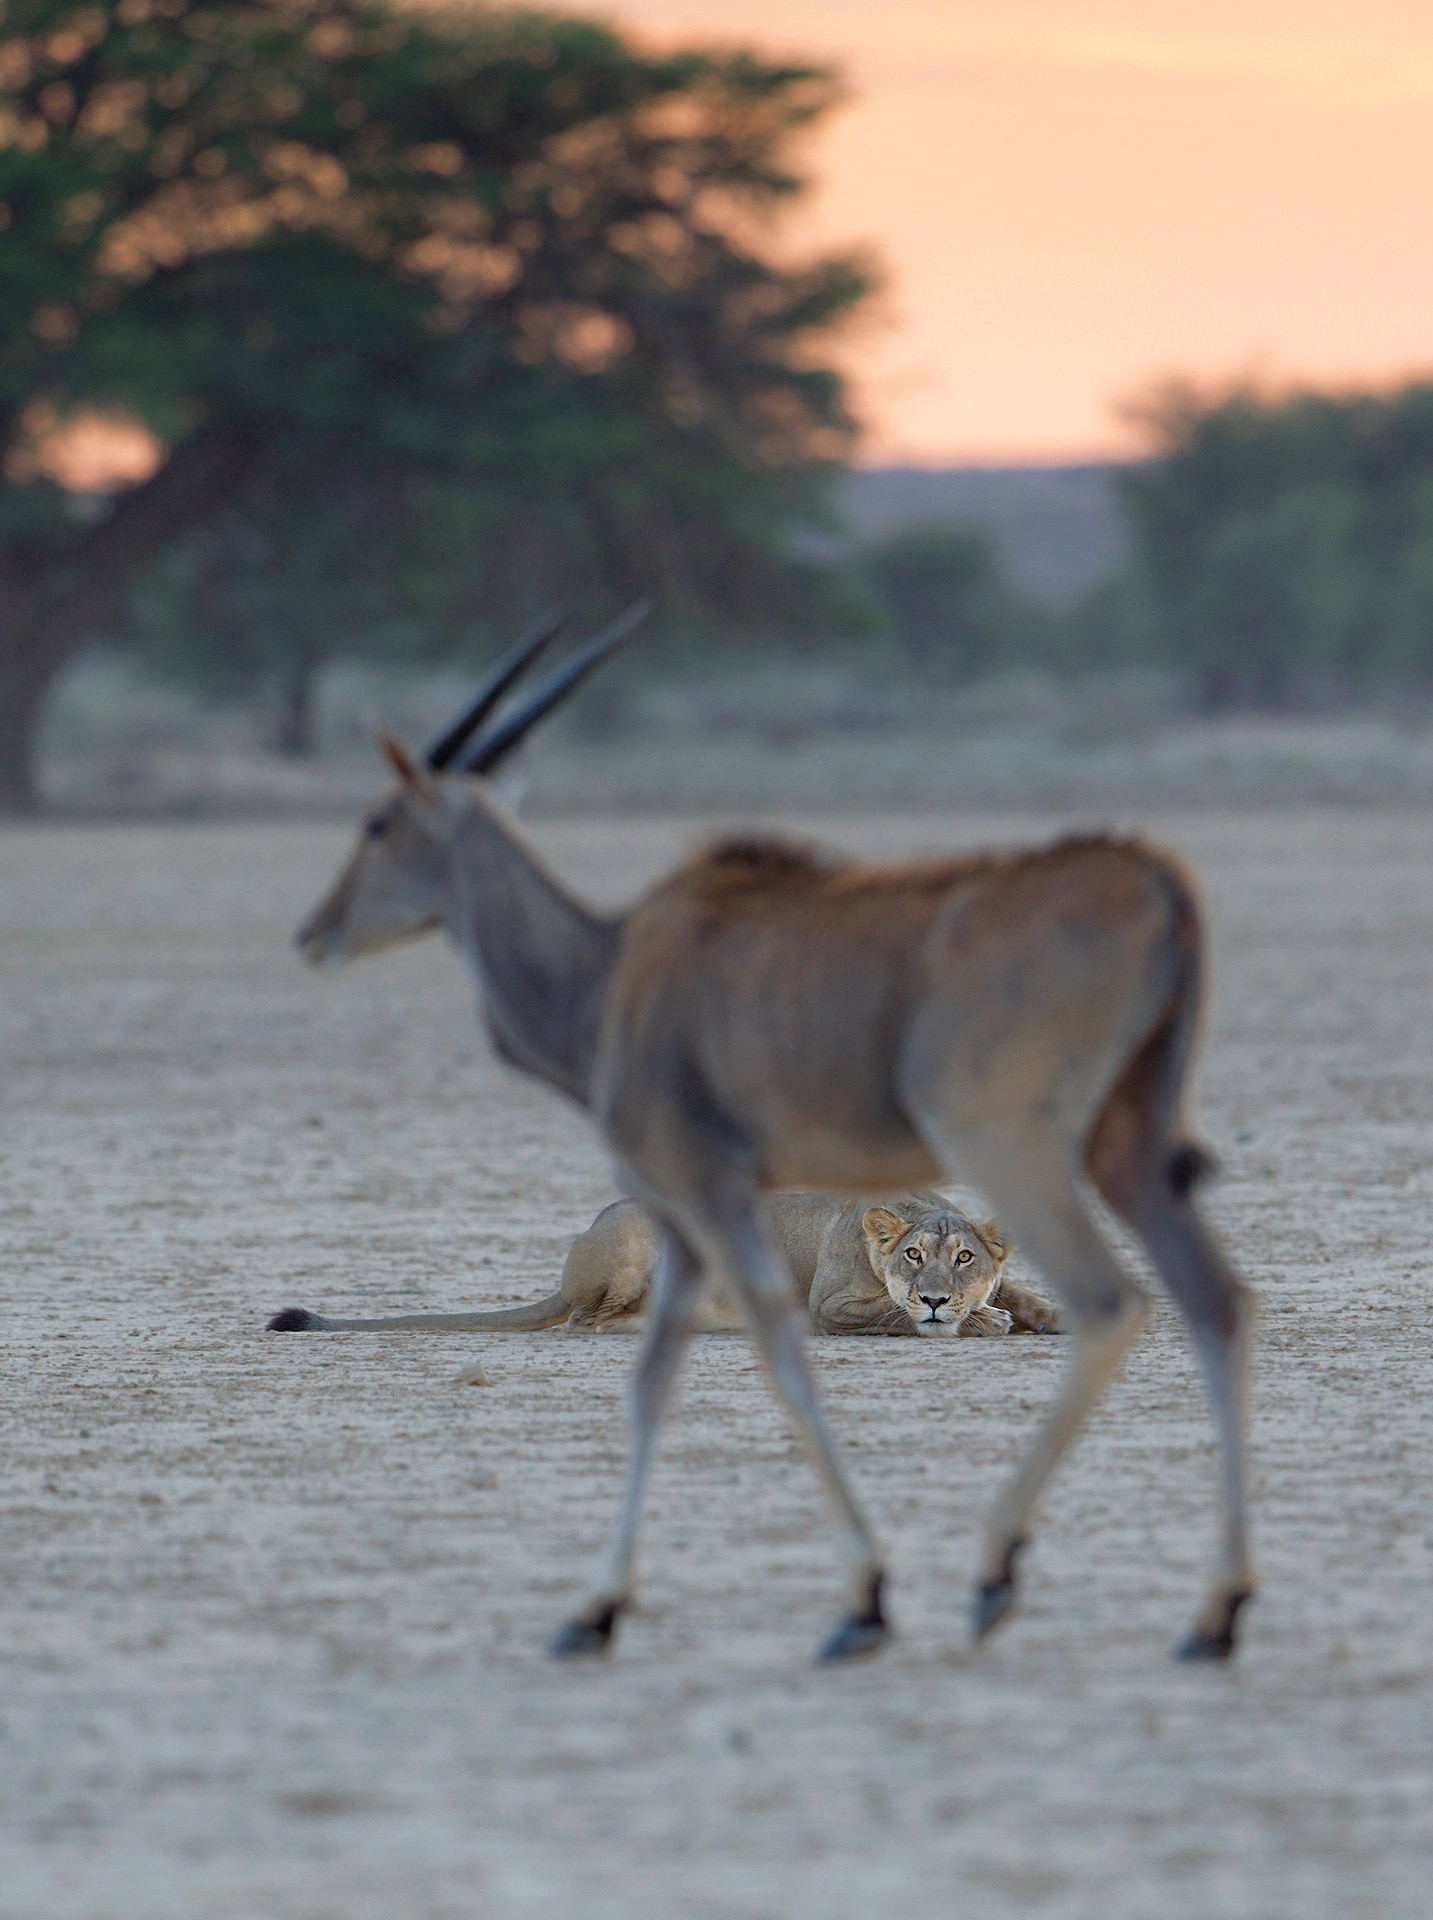 Photo: Eyes on the Prize by Morkel Erasmus